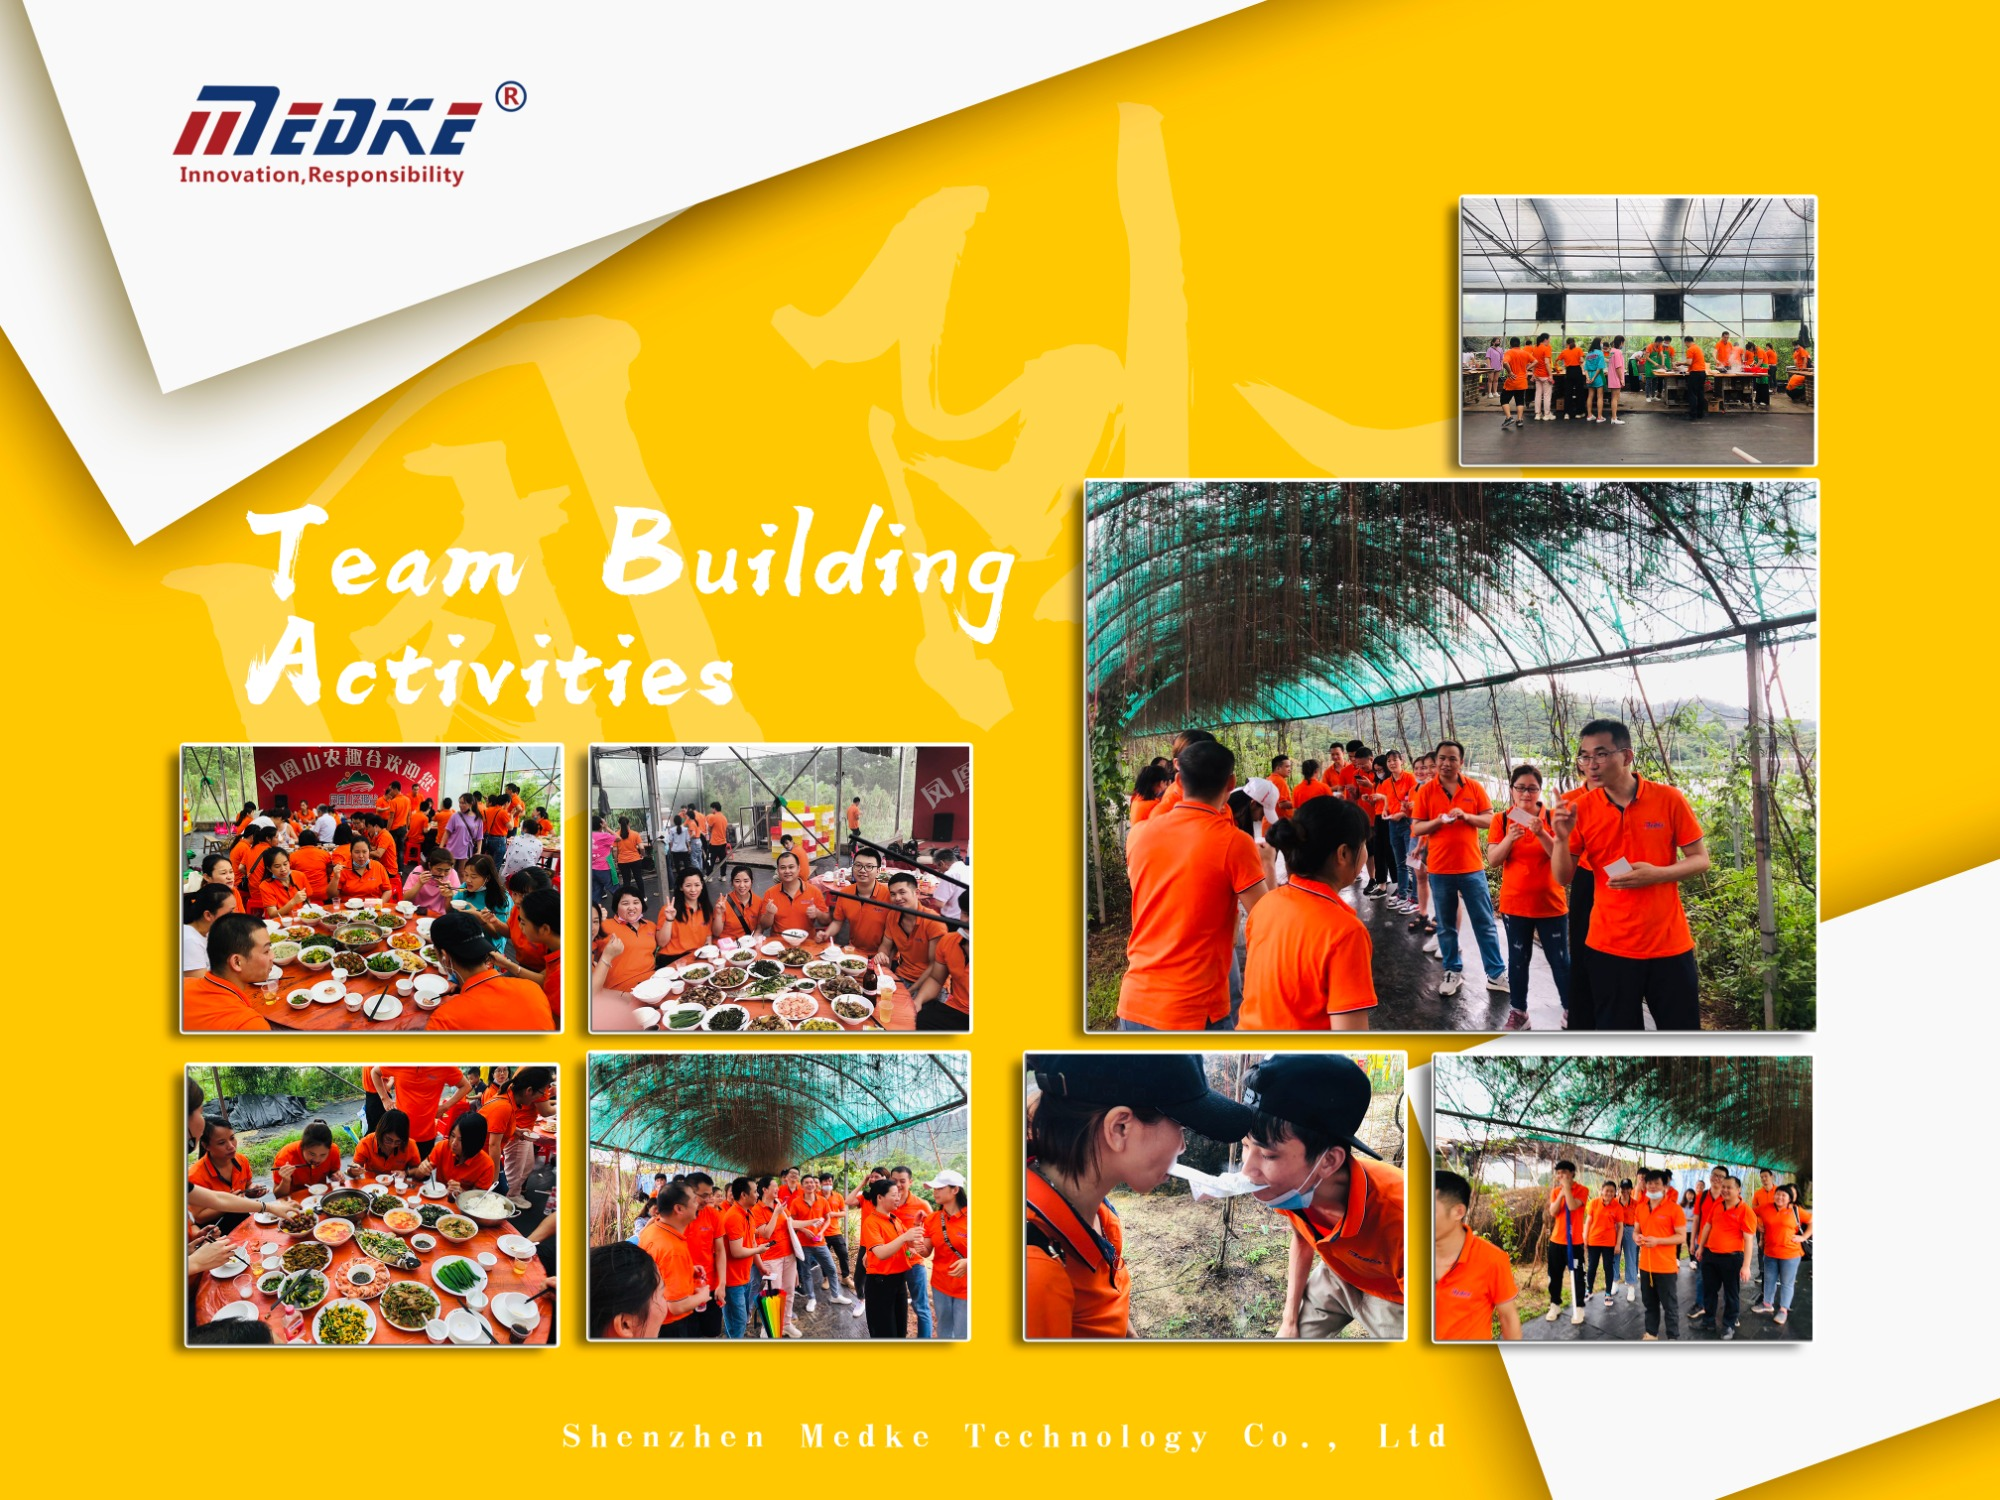 Medke Team Building Activities